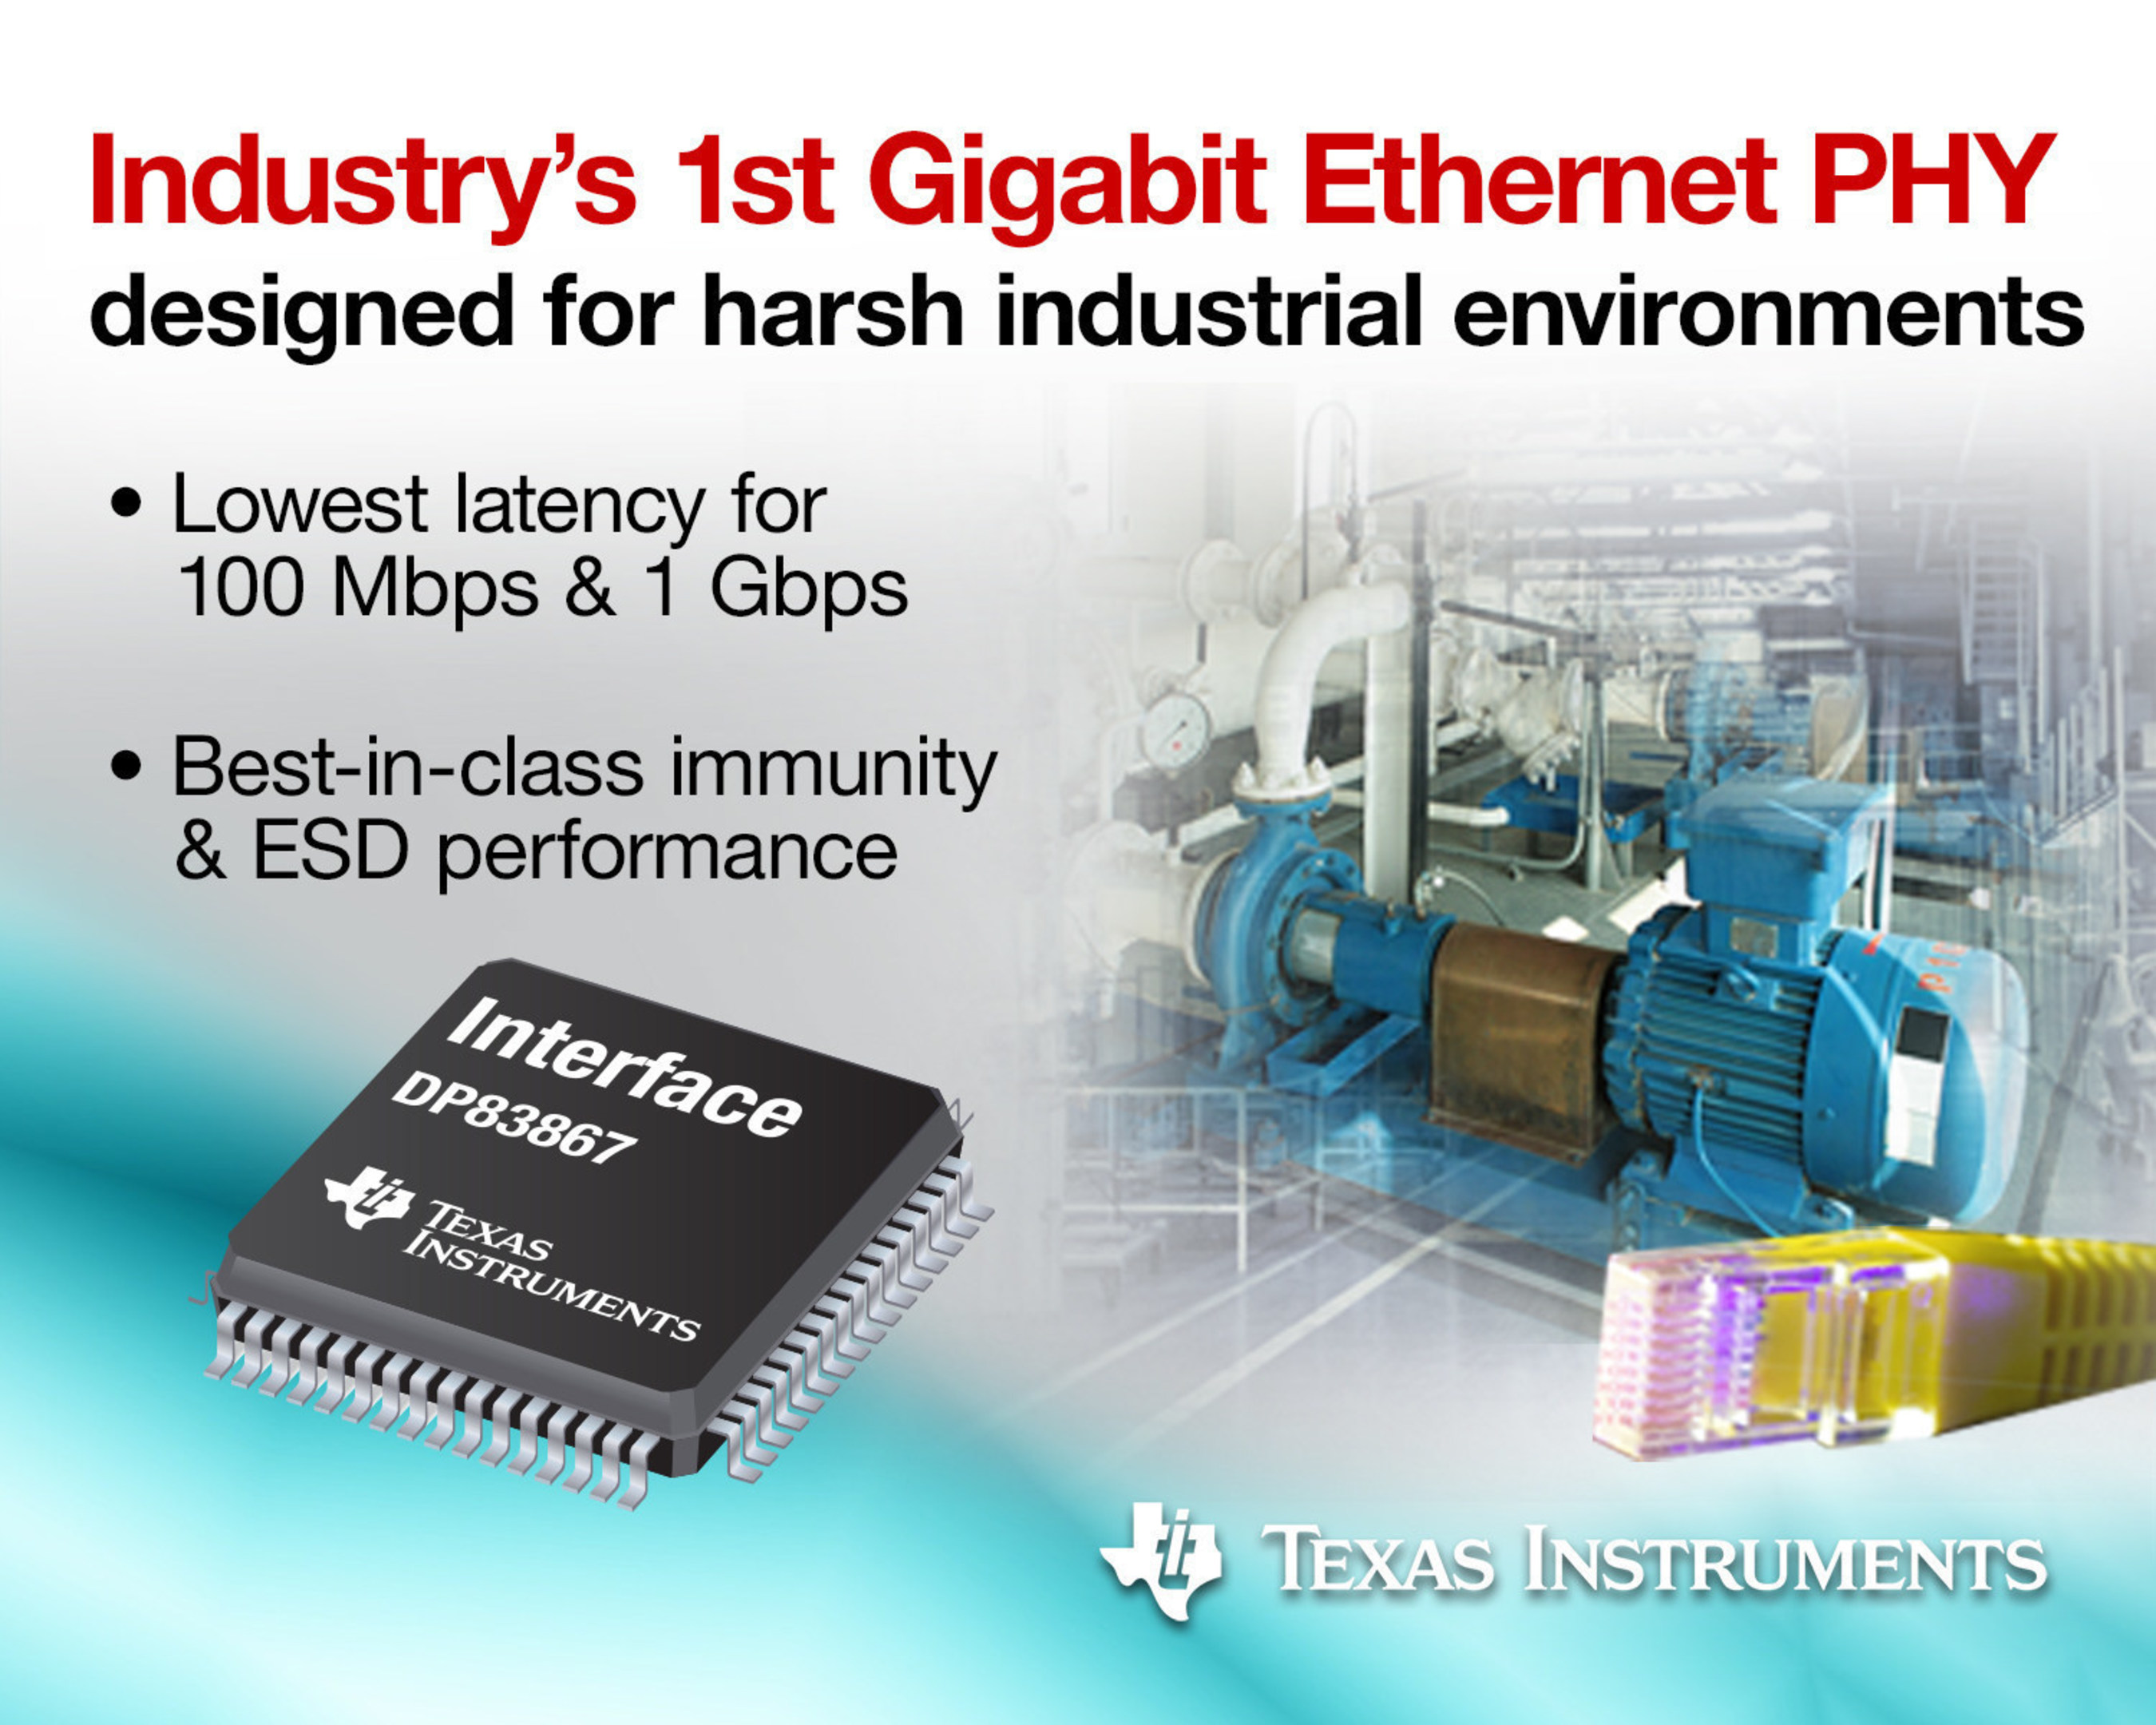 TI introduces lowest latency, highest ESD industrial Gigabit Ethernet PHYs, enabling real-time Industry 4.0 applications